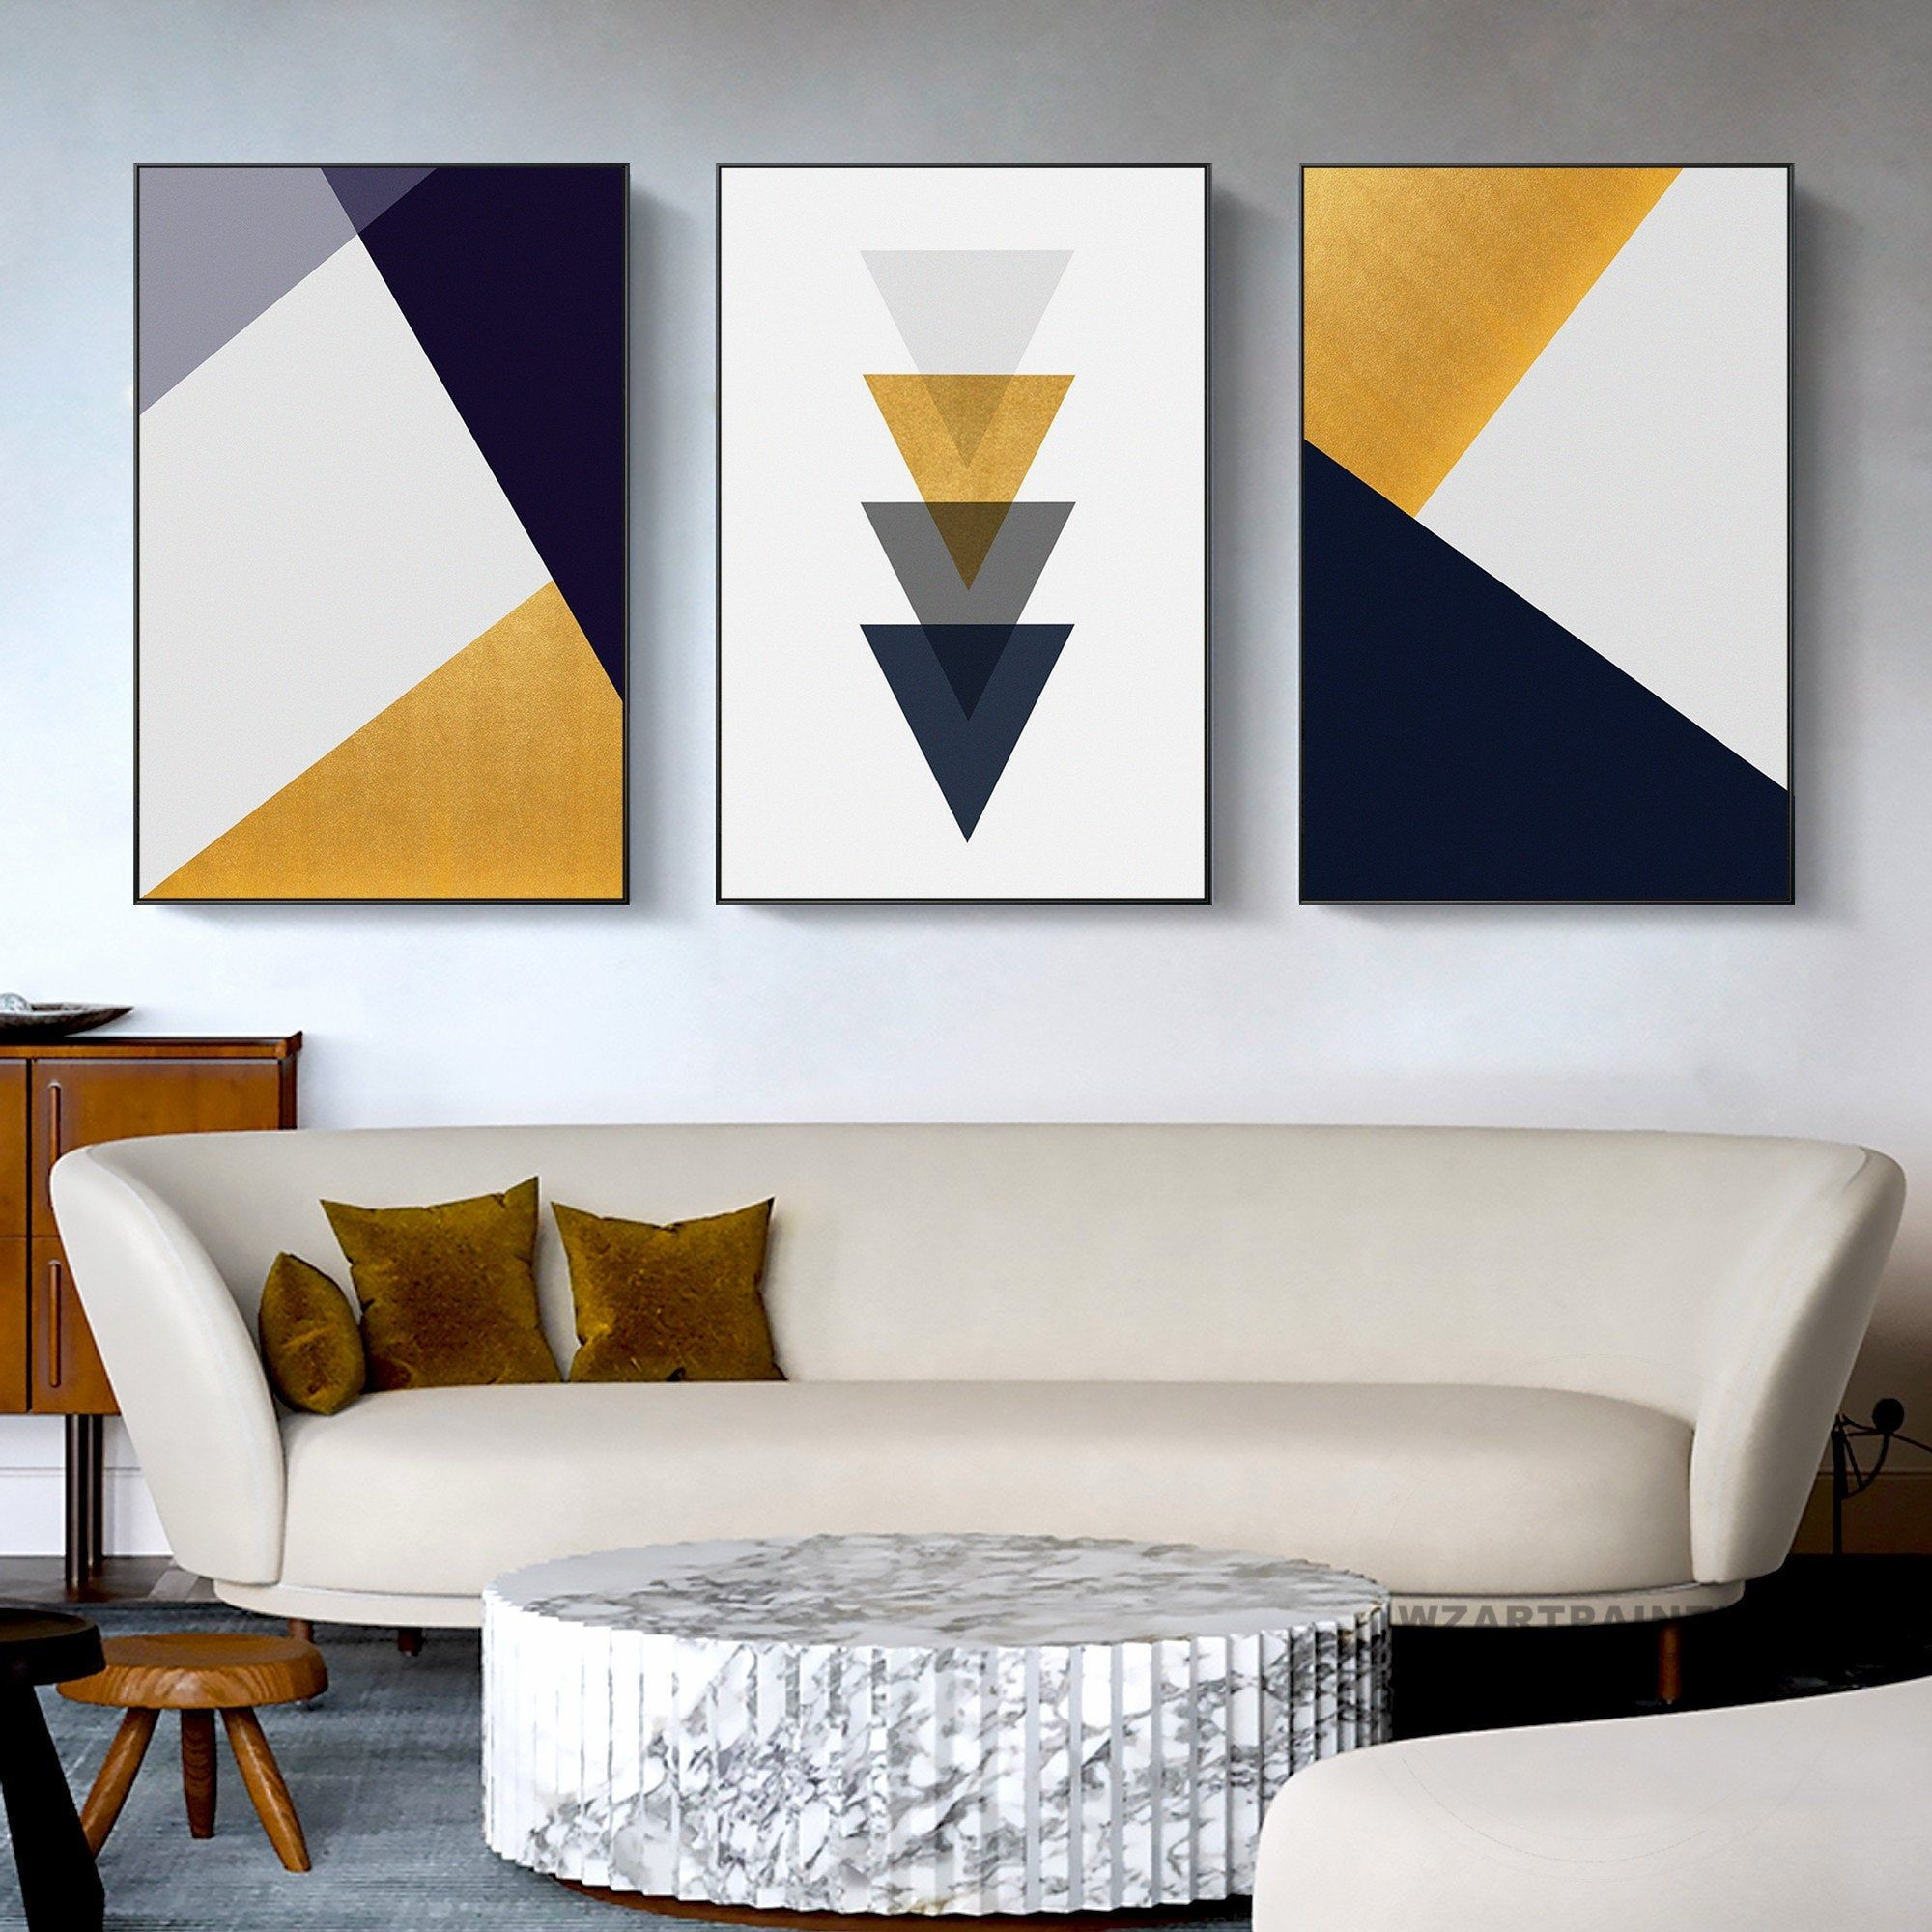 Set Of 3 Framed Wall Art Prints Geometric Abstract Black Yellow White Grey Print Painting On Canvas Diy Canvas Wall Art Geometric Wall Art Canvas Painting Diy